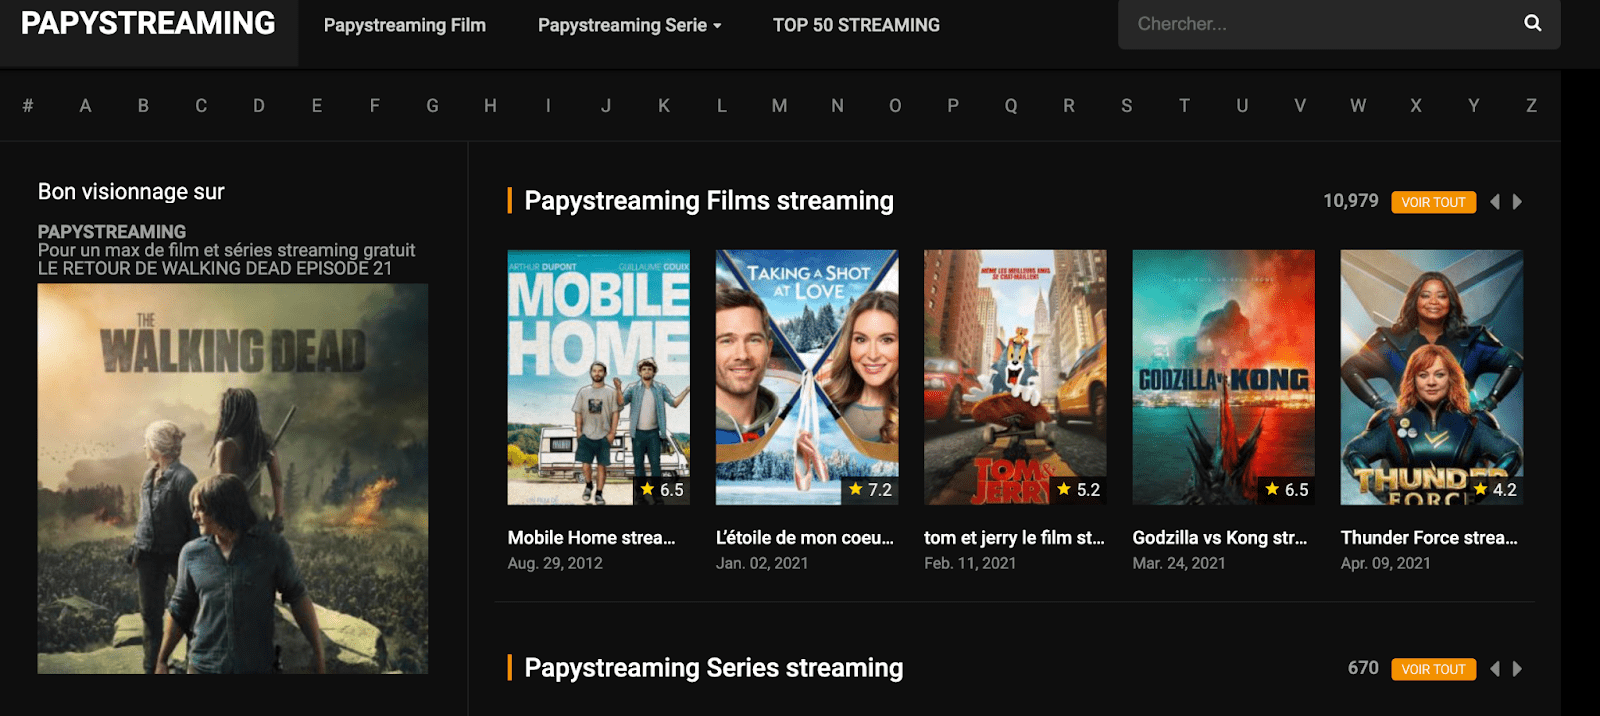 Papystreaming banner